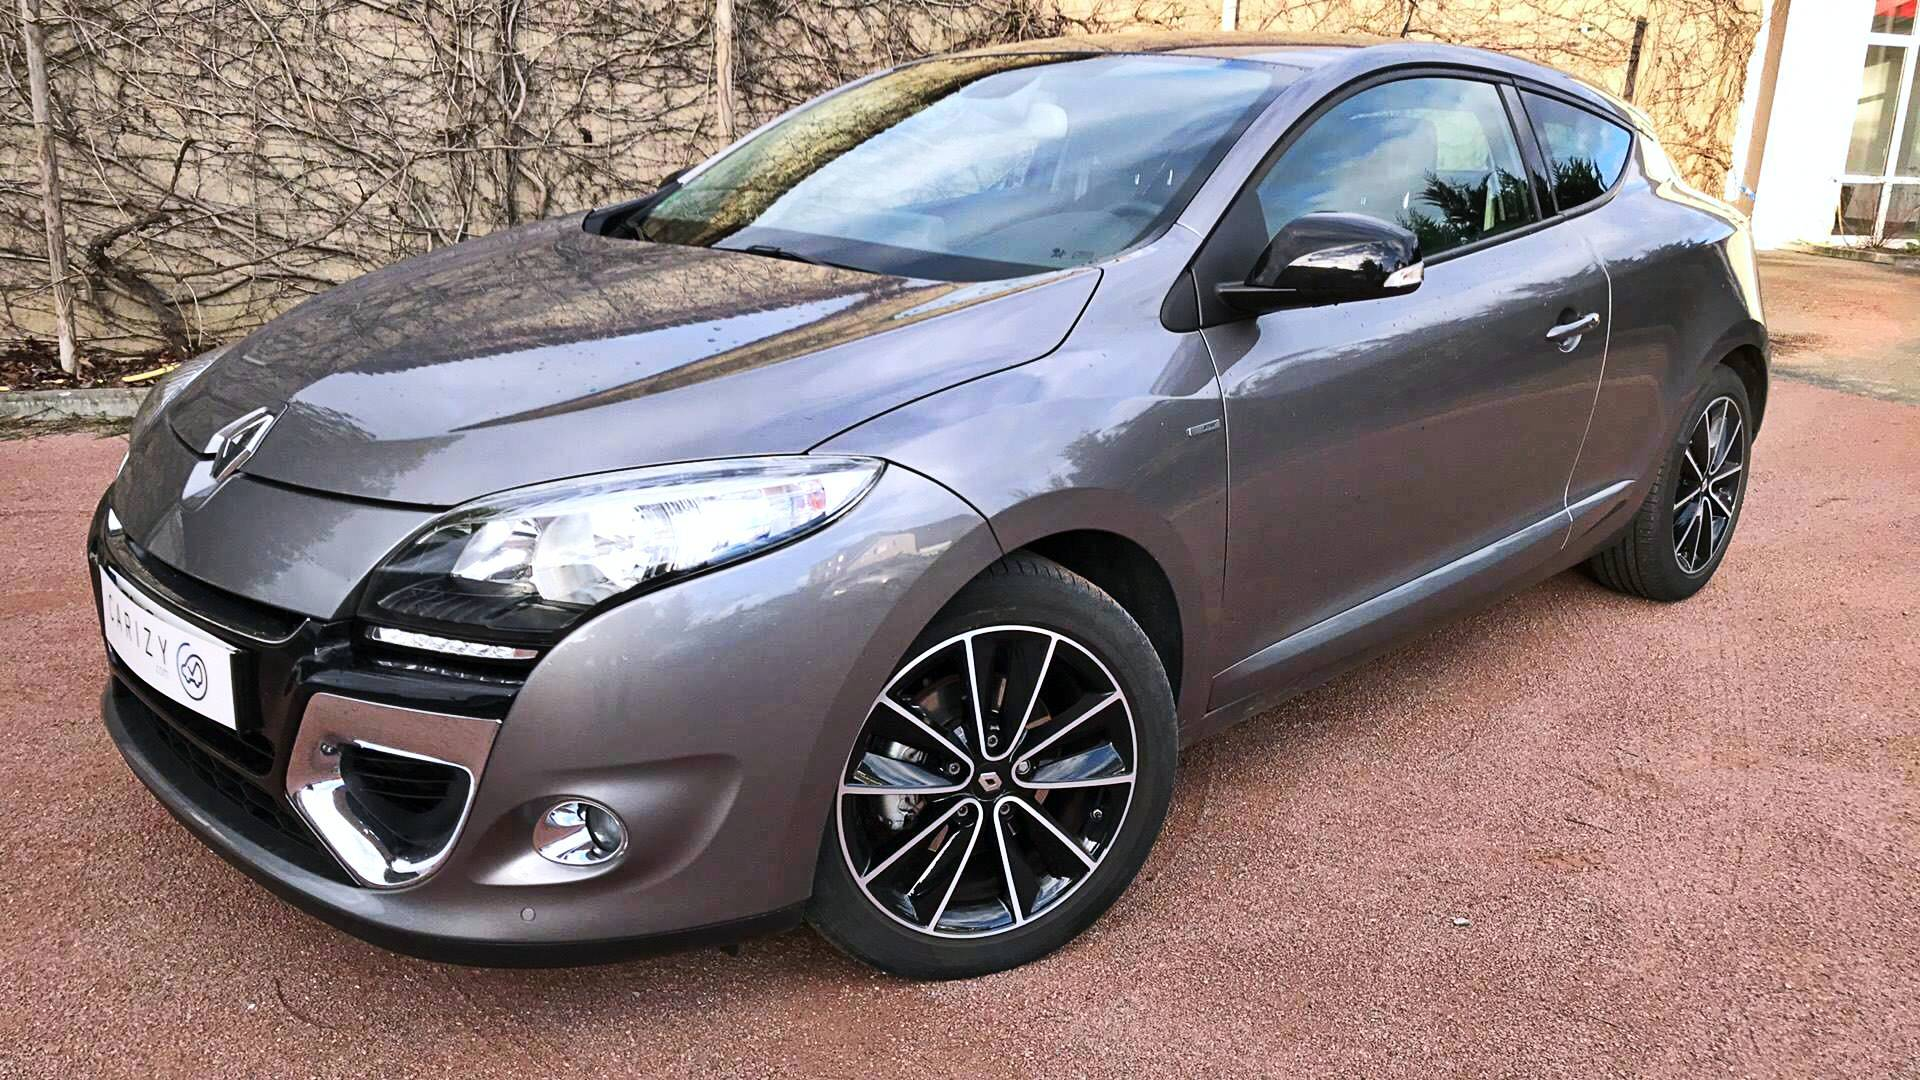 renault megane d 39 occasion coupe 1 4 tce 130 bose le mans carizy. Black Bedroom Furniture Sets. Home Design Ideas